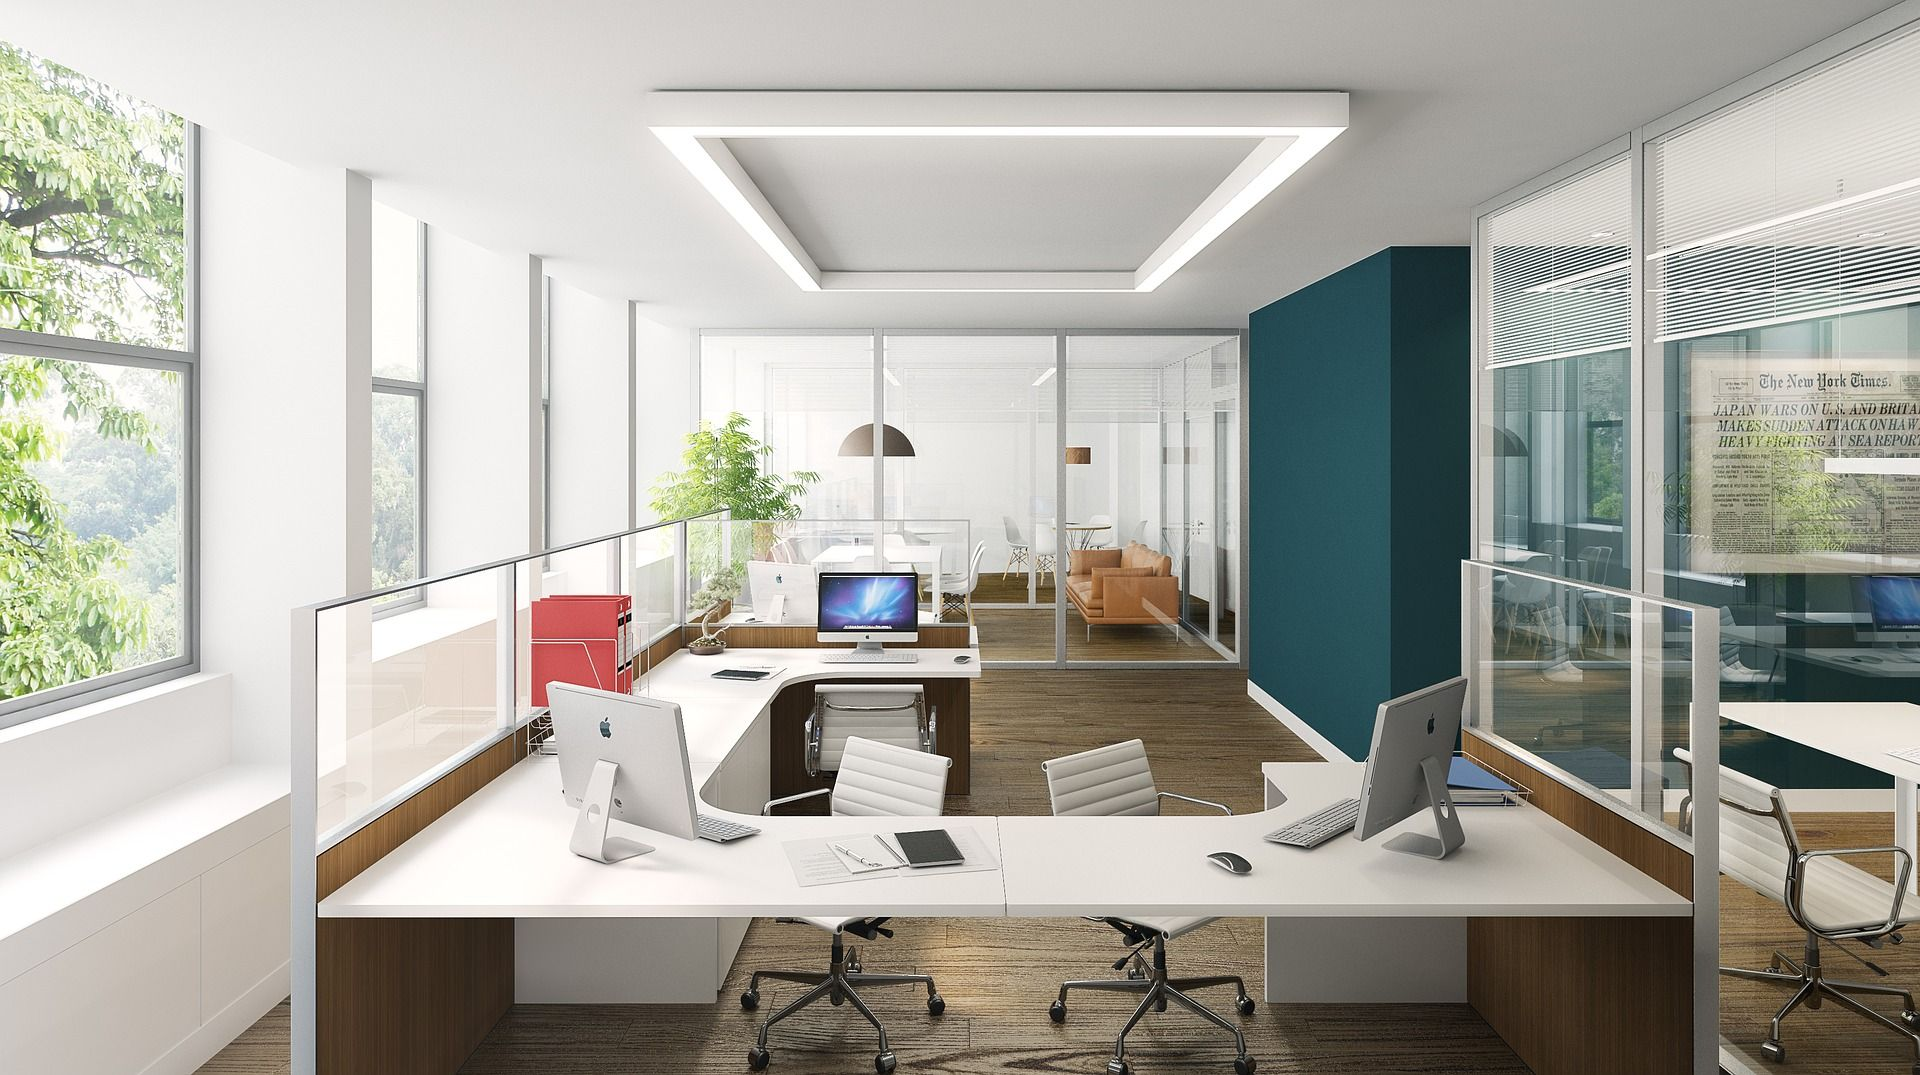 7 Chic Design Trends To Create More Productive Work Environment